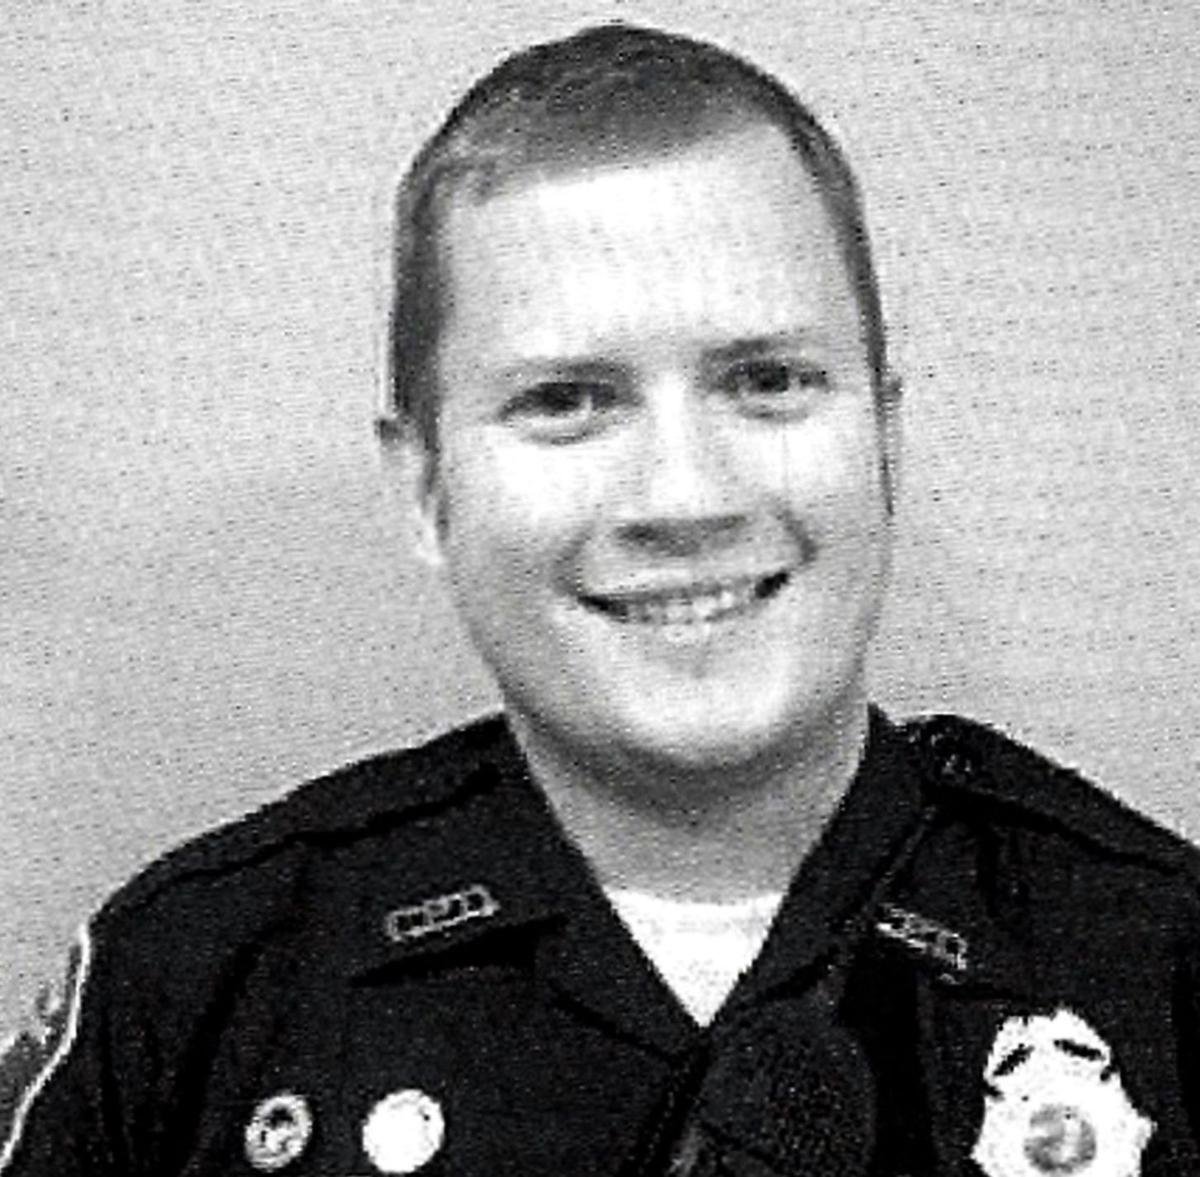 Charleston police officer takes his life during standoff in West Ashley